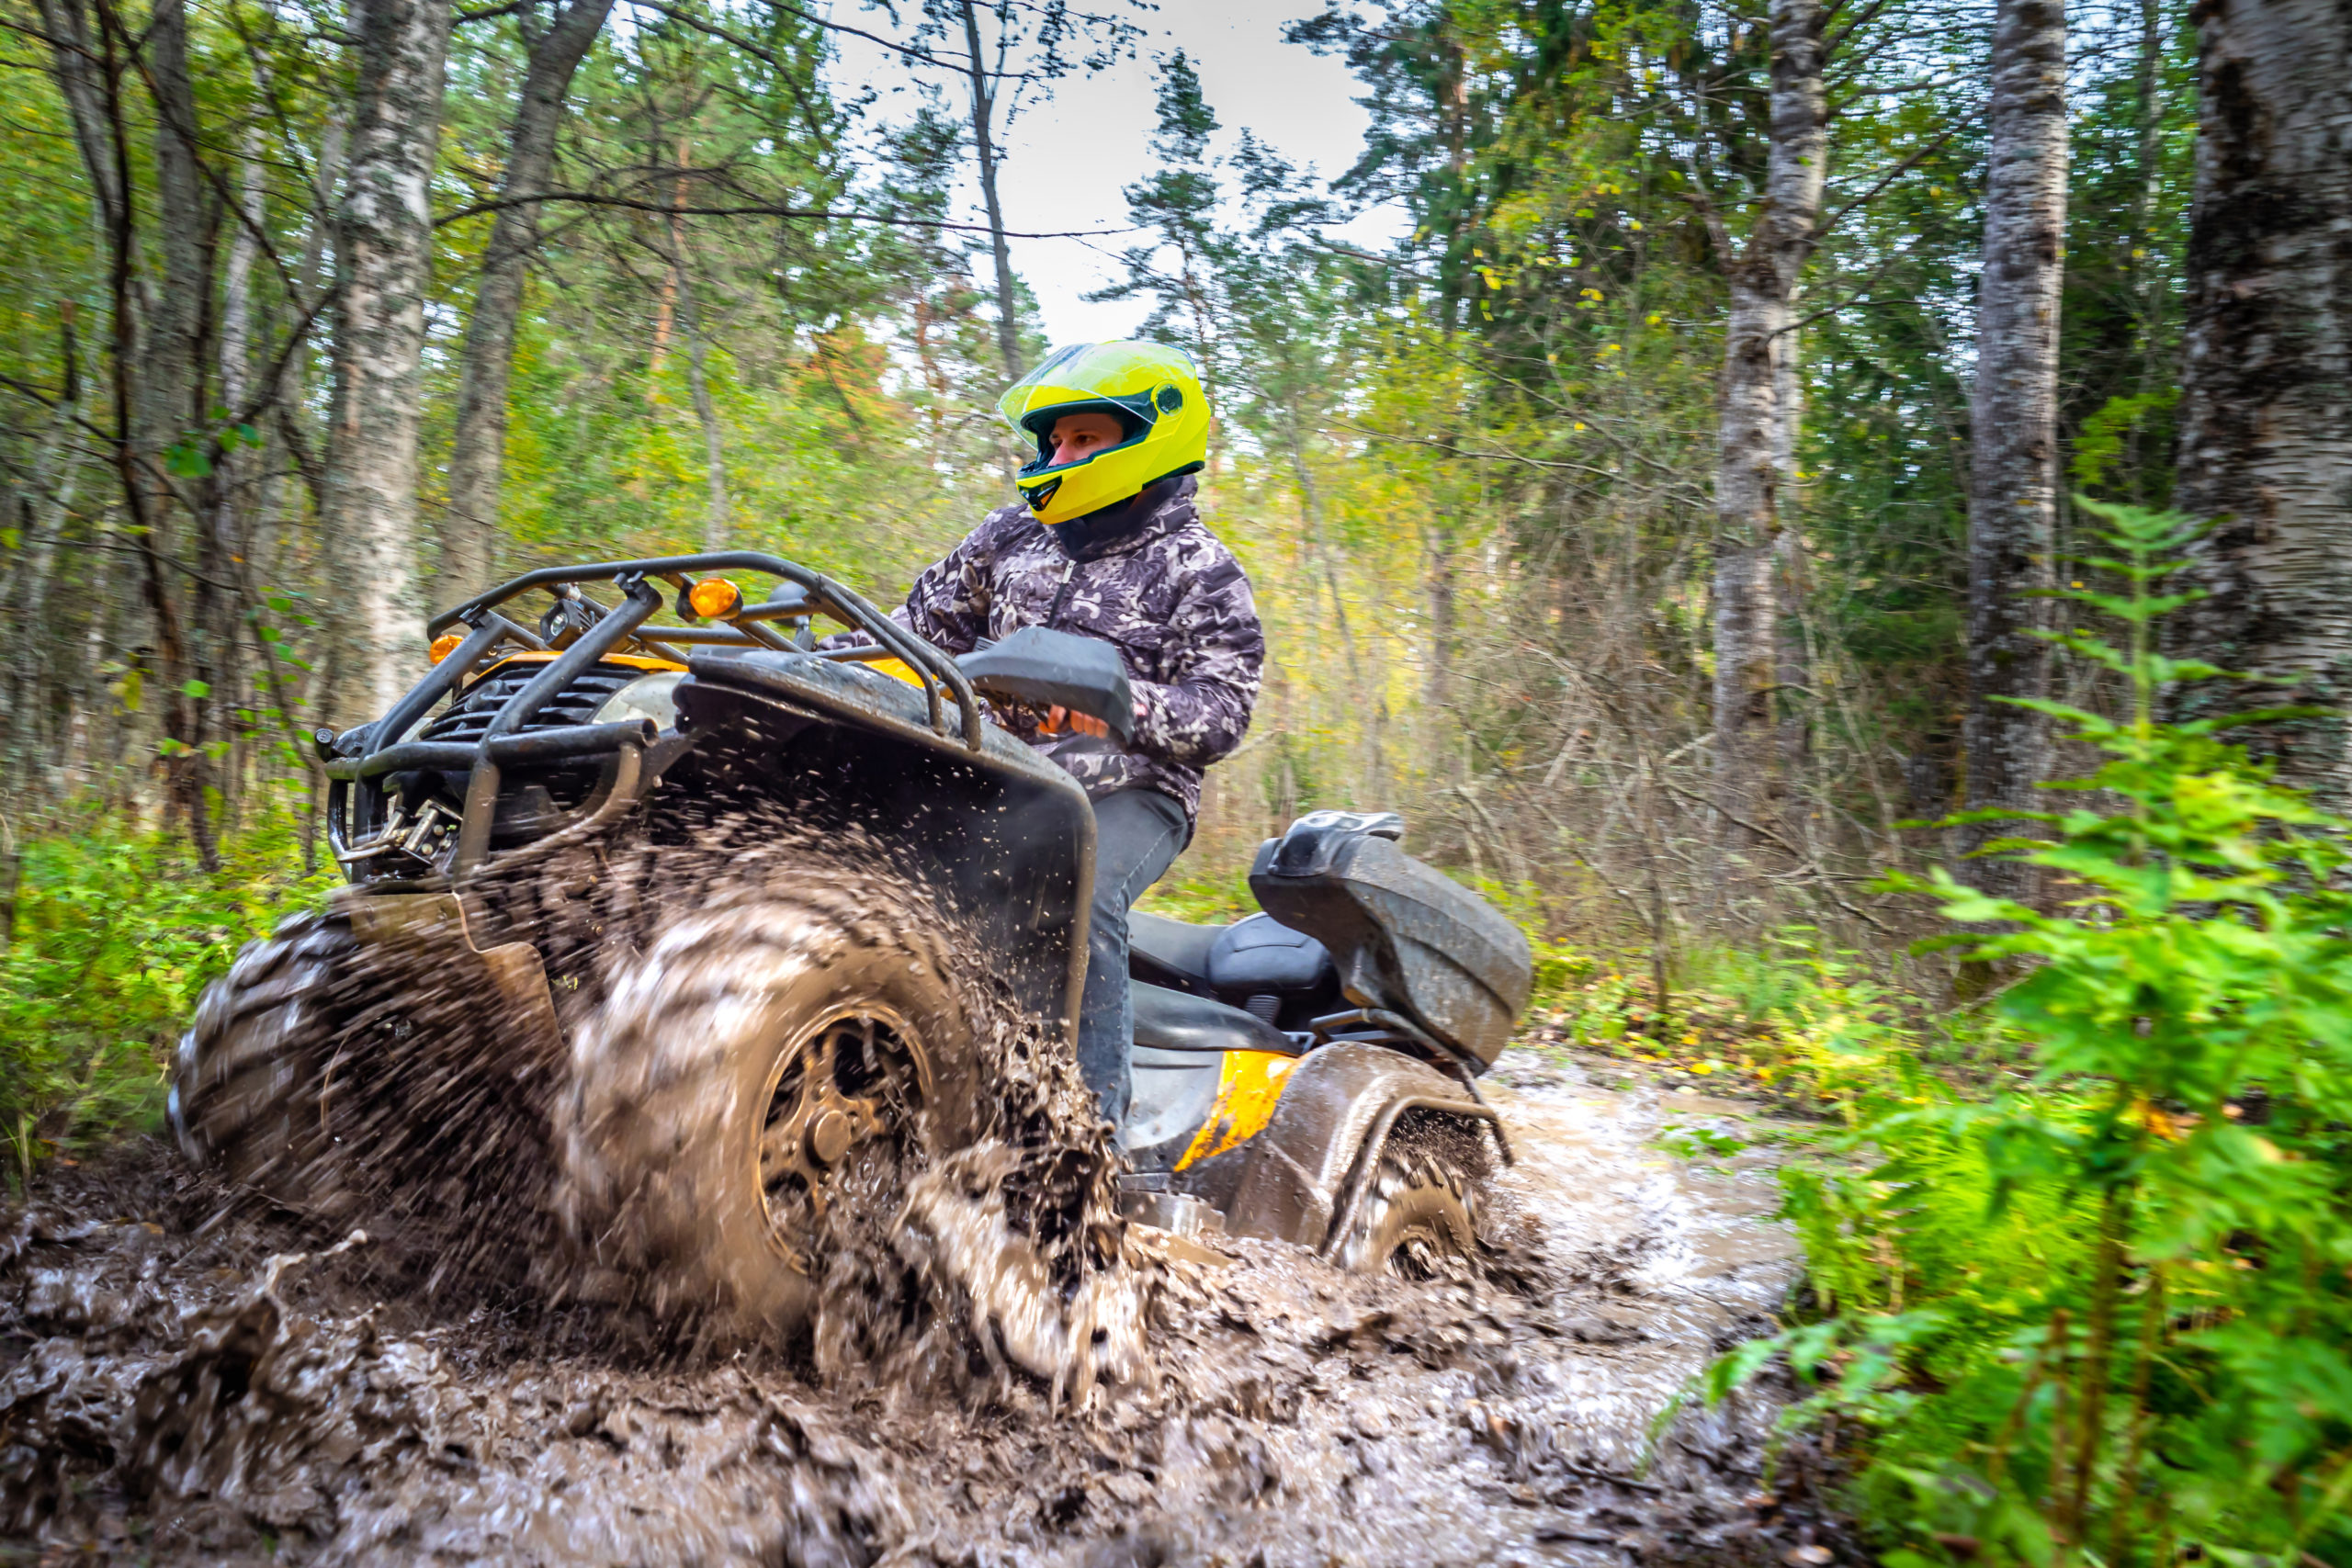 Blog - Man on ATV rides on a dirt road. Powerful transport. Off-road trip. Extreme rest. A trip through the autumn forest. Racing in nature.